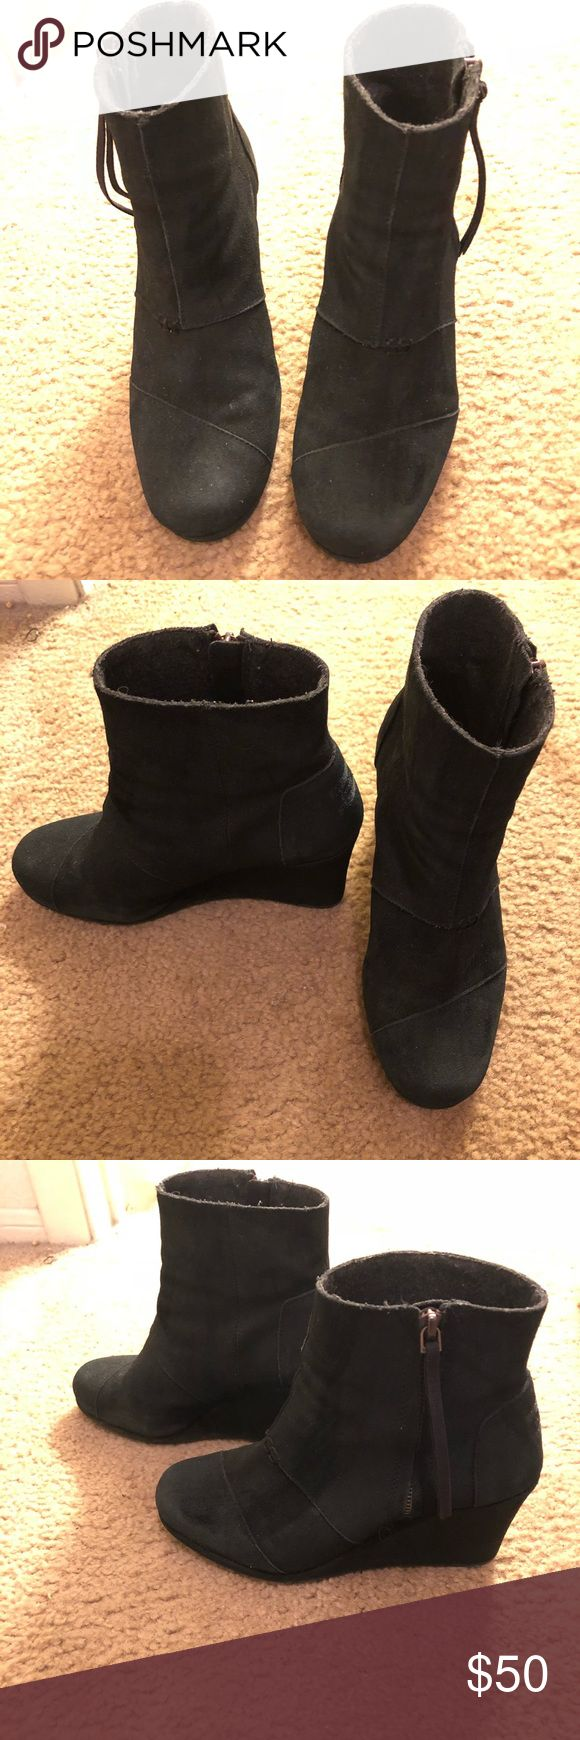 Toms black wedges Great little boot wedges, perfect with jeans or dresses. The suede uppers were recently cleaned and sprayed with water protectant spray. Rarely worn in like new condition. Toms Shoes Ankle Boots & Booties